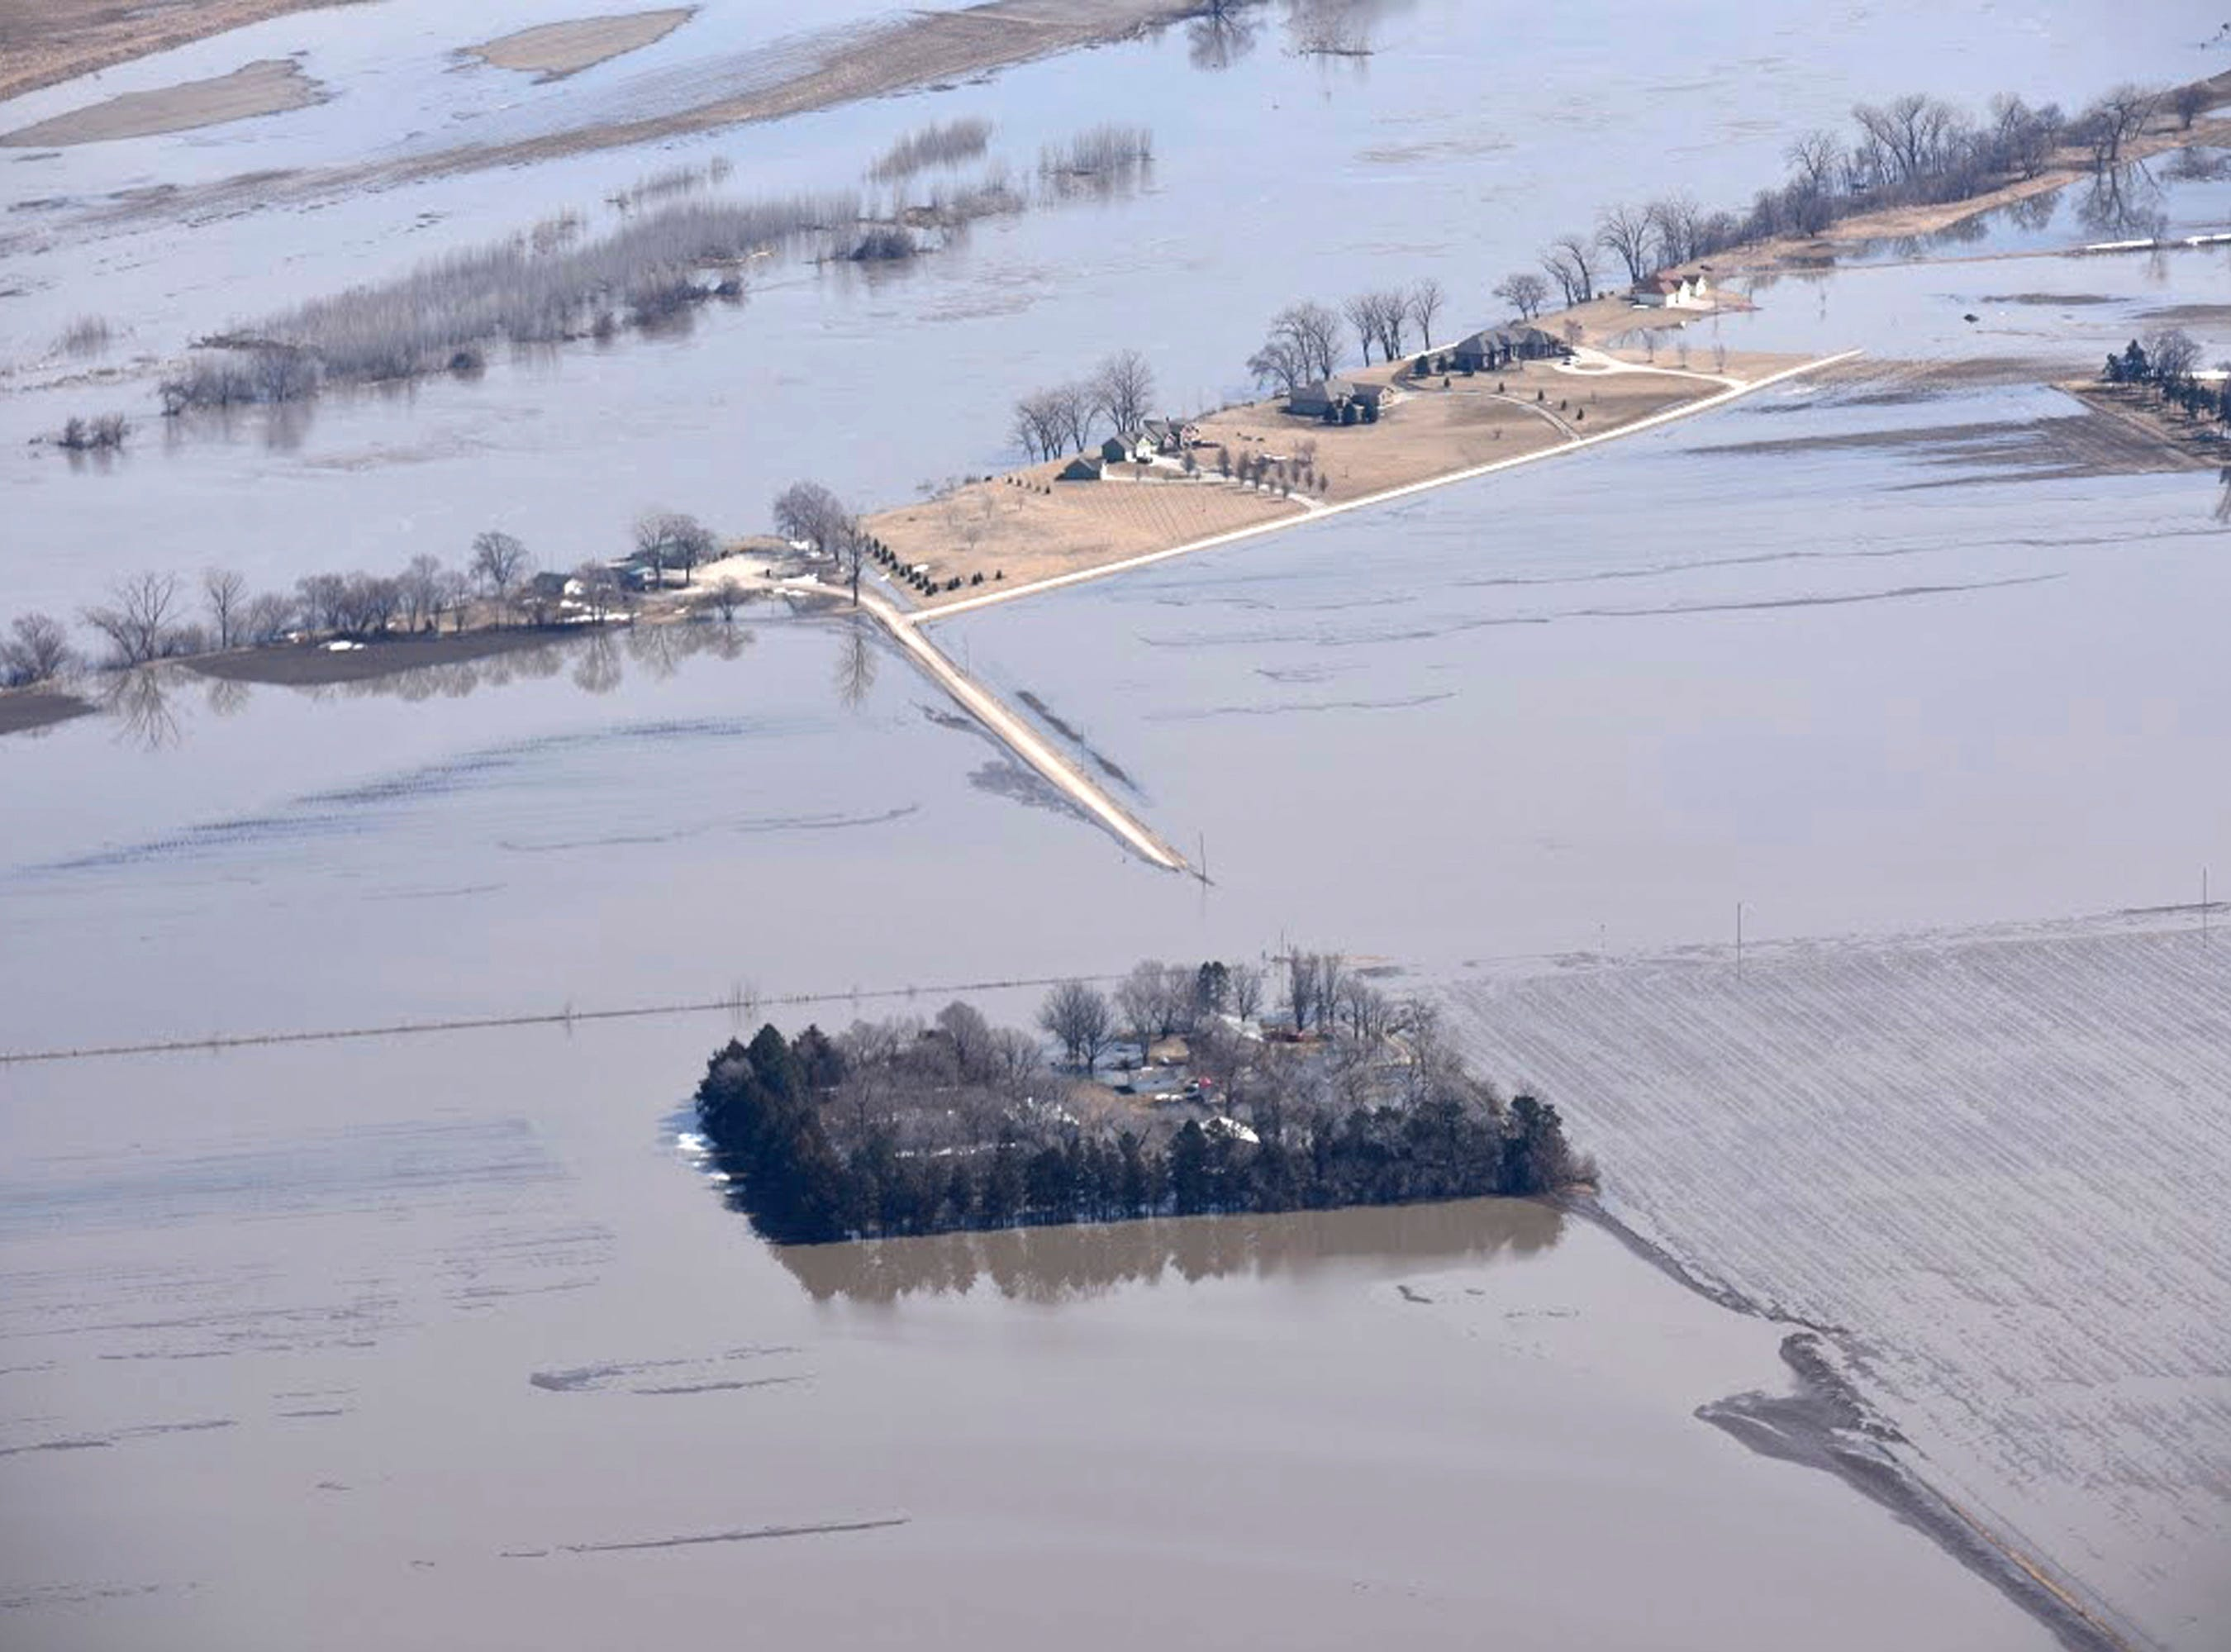 In this Monday, March 18, 2019, photo taken by the South Dakota Civil Air Patrol and provided by the Iowa Department of Homeland Security and Emergency Management, shows flooding along the Missouri River north of Blair, Neb.